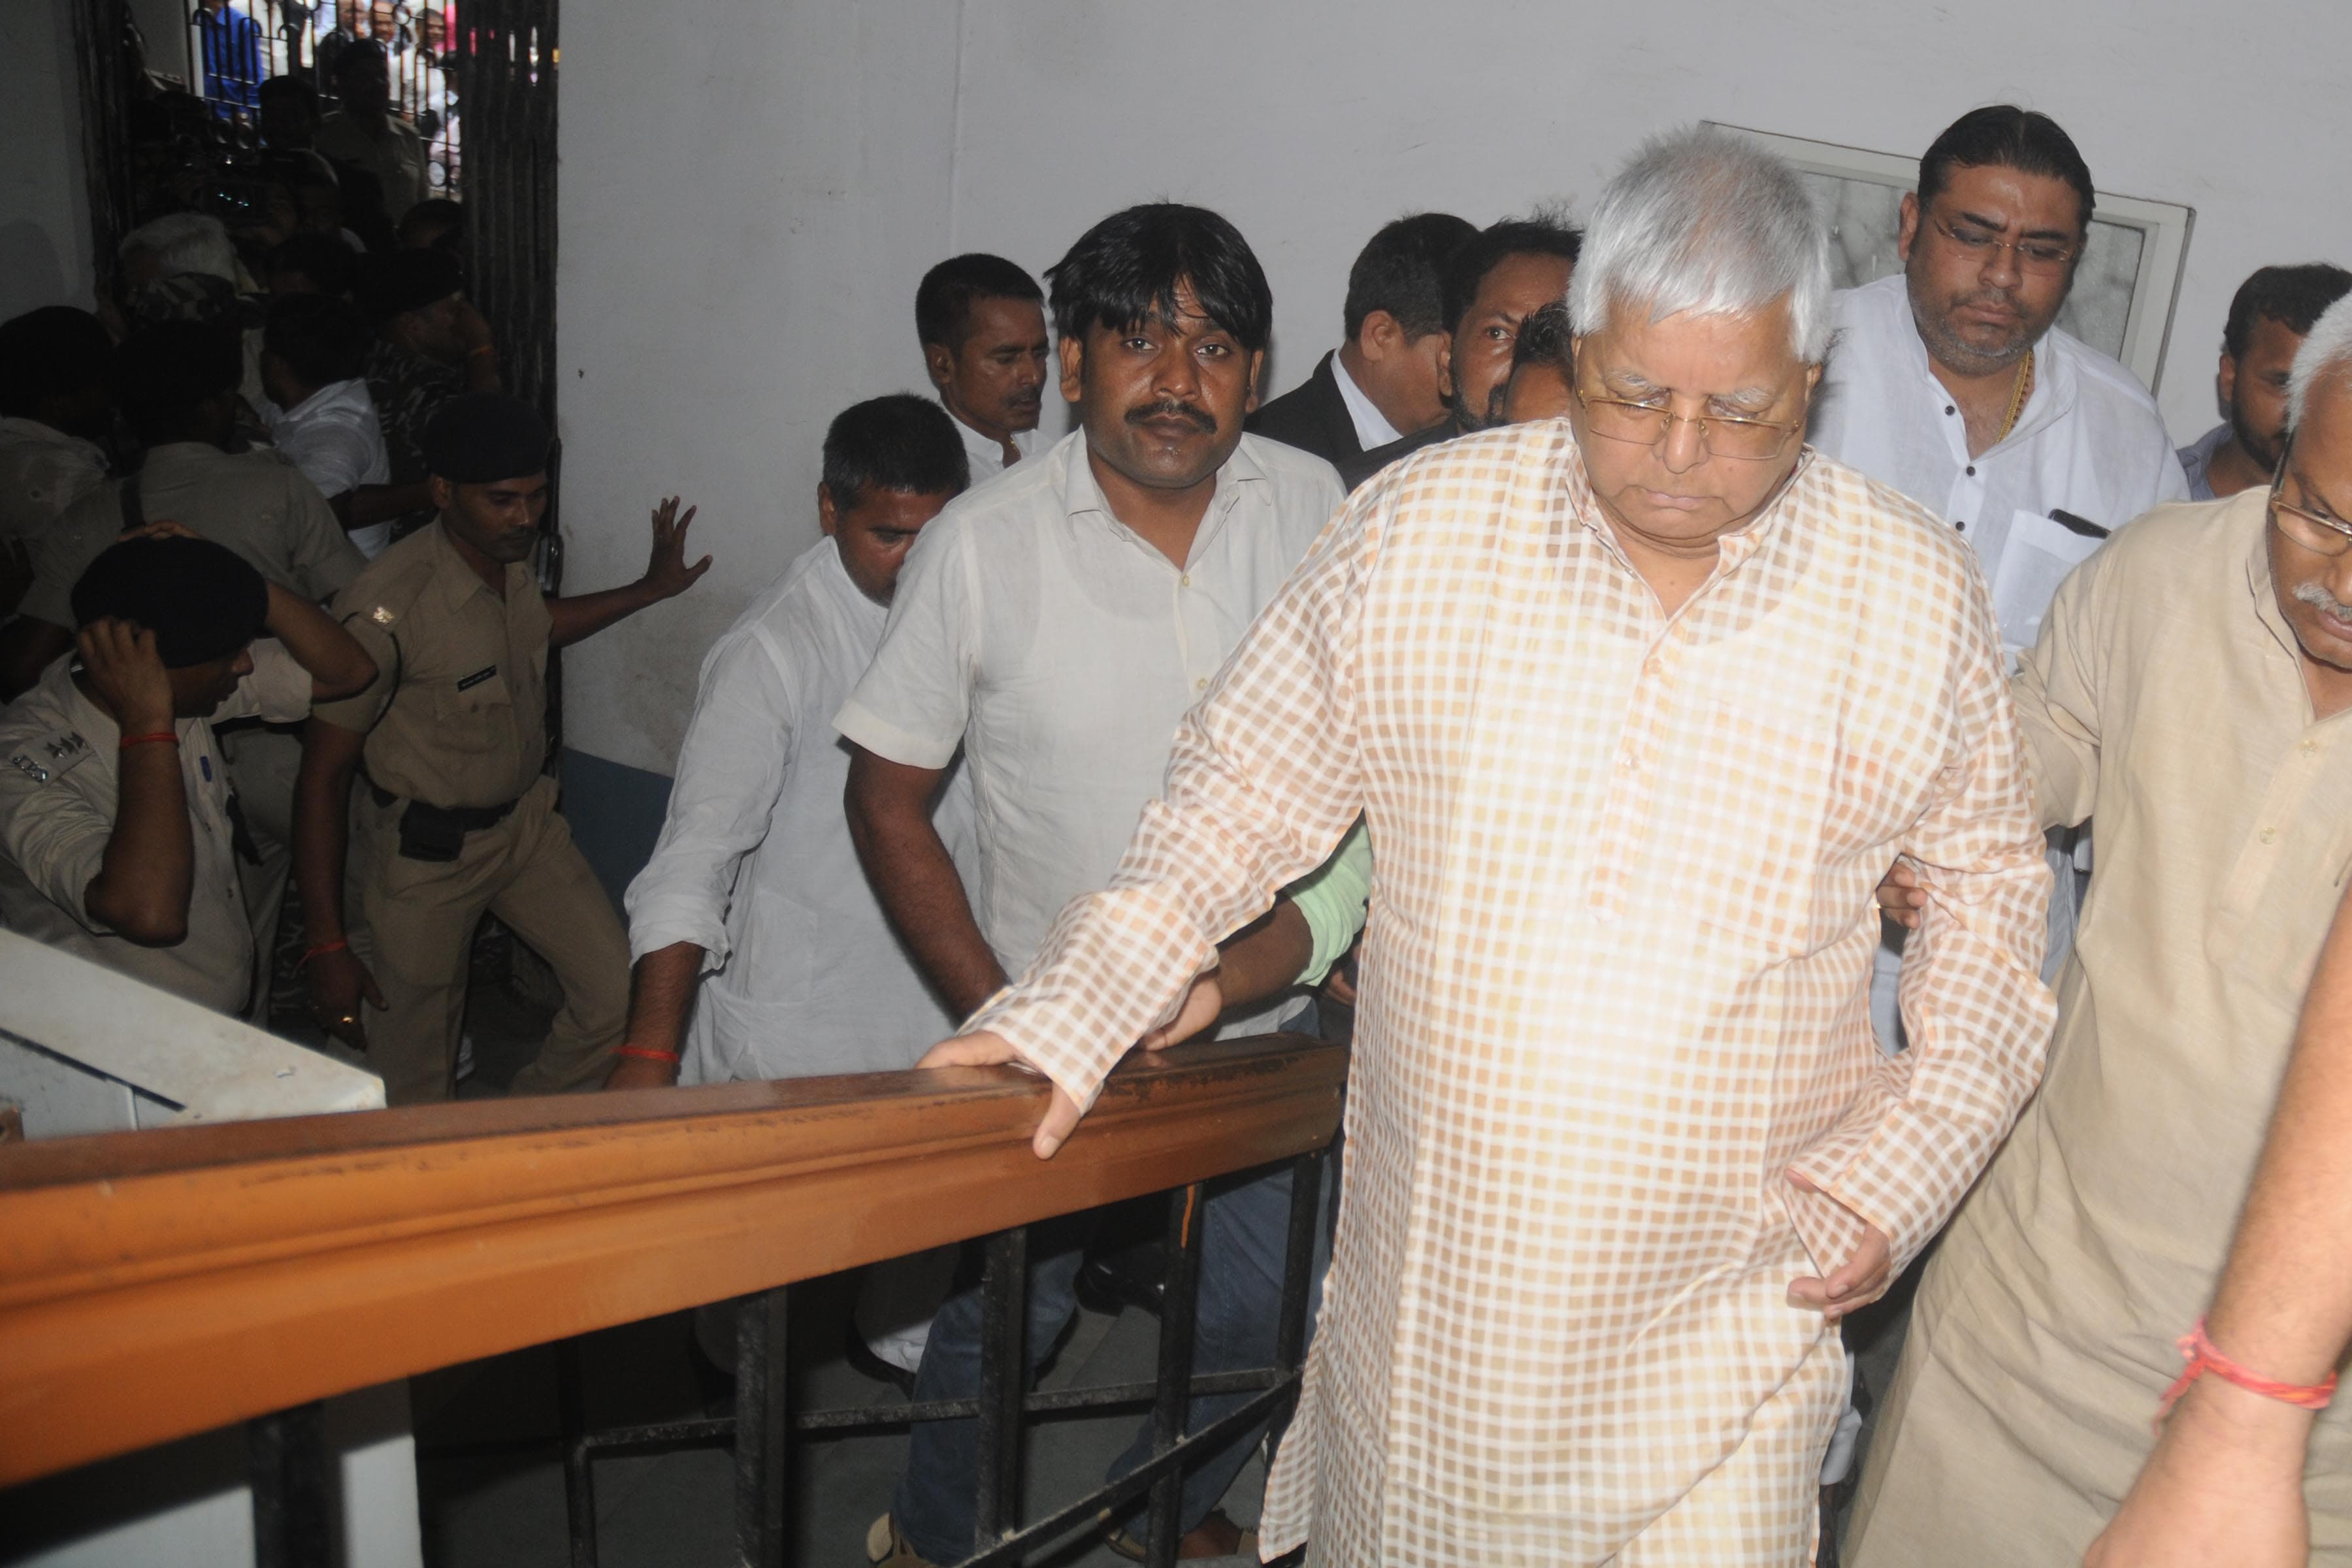 <p>Rashtriya Janta Dal (RJD) leader and former Bihar Chief Minister Lalu Prasad Yadav leave Special CBI court in Ranchi on Thursday, August 30, 2018. Lalu has been convicted in four…